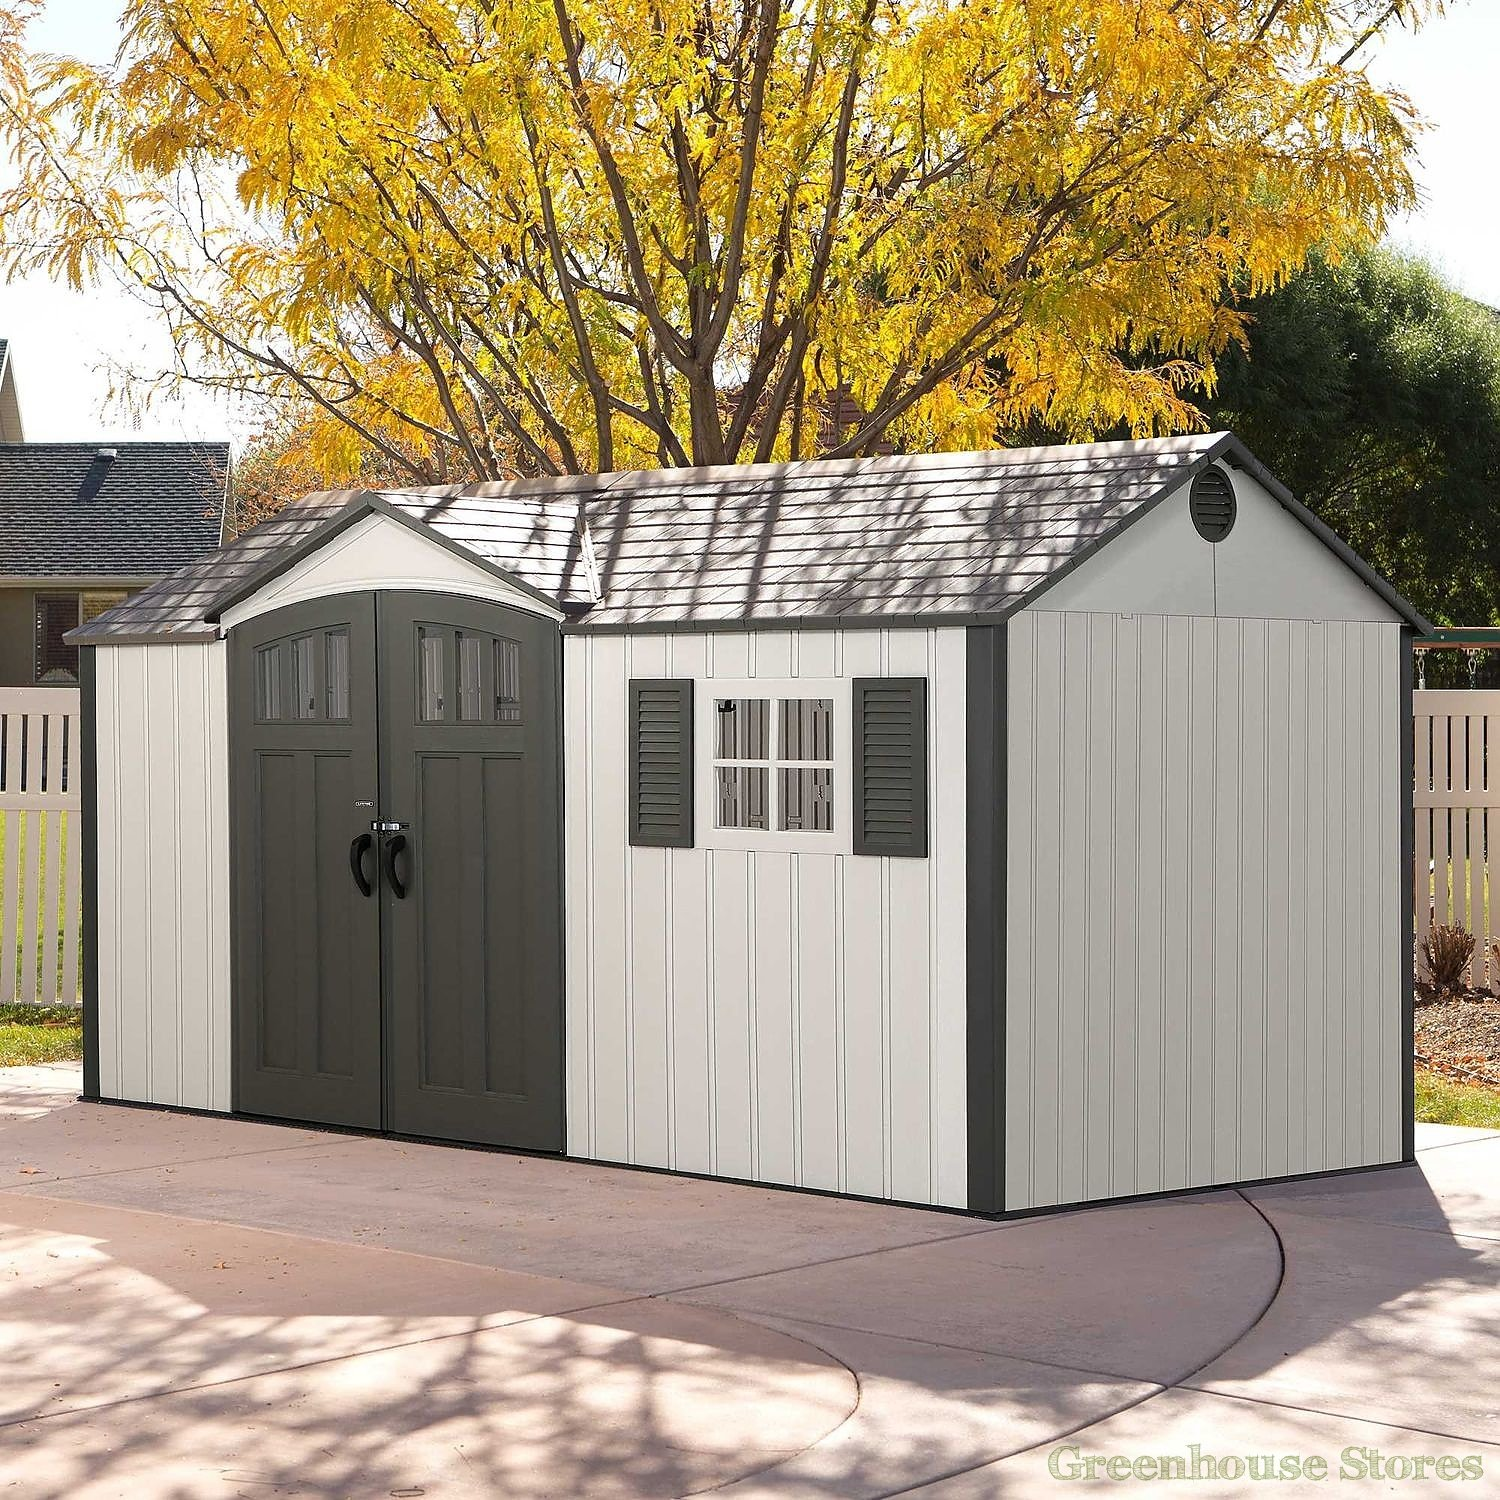 Lifetime 12 5x8 Plastic Shed Greenhouse Stores